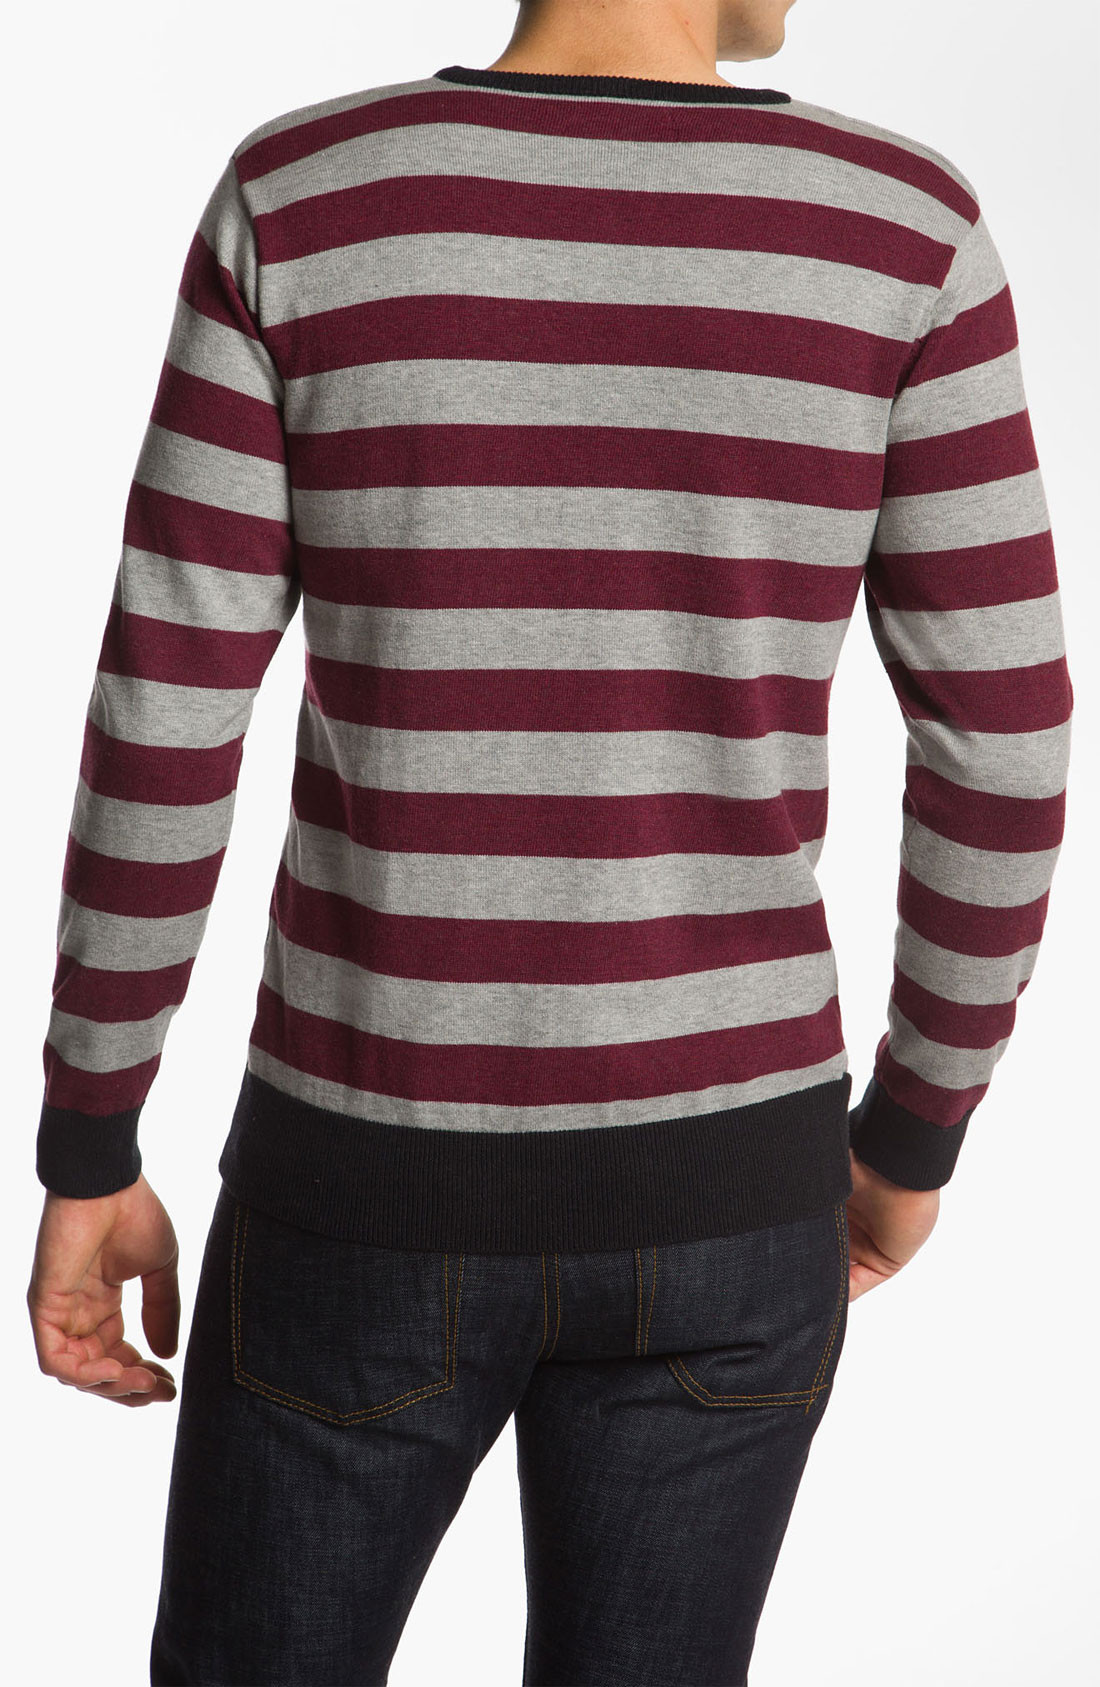 Vol Other Circle Crewneck Sweater for Men